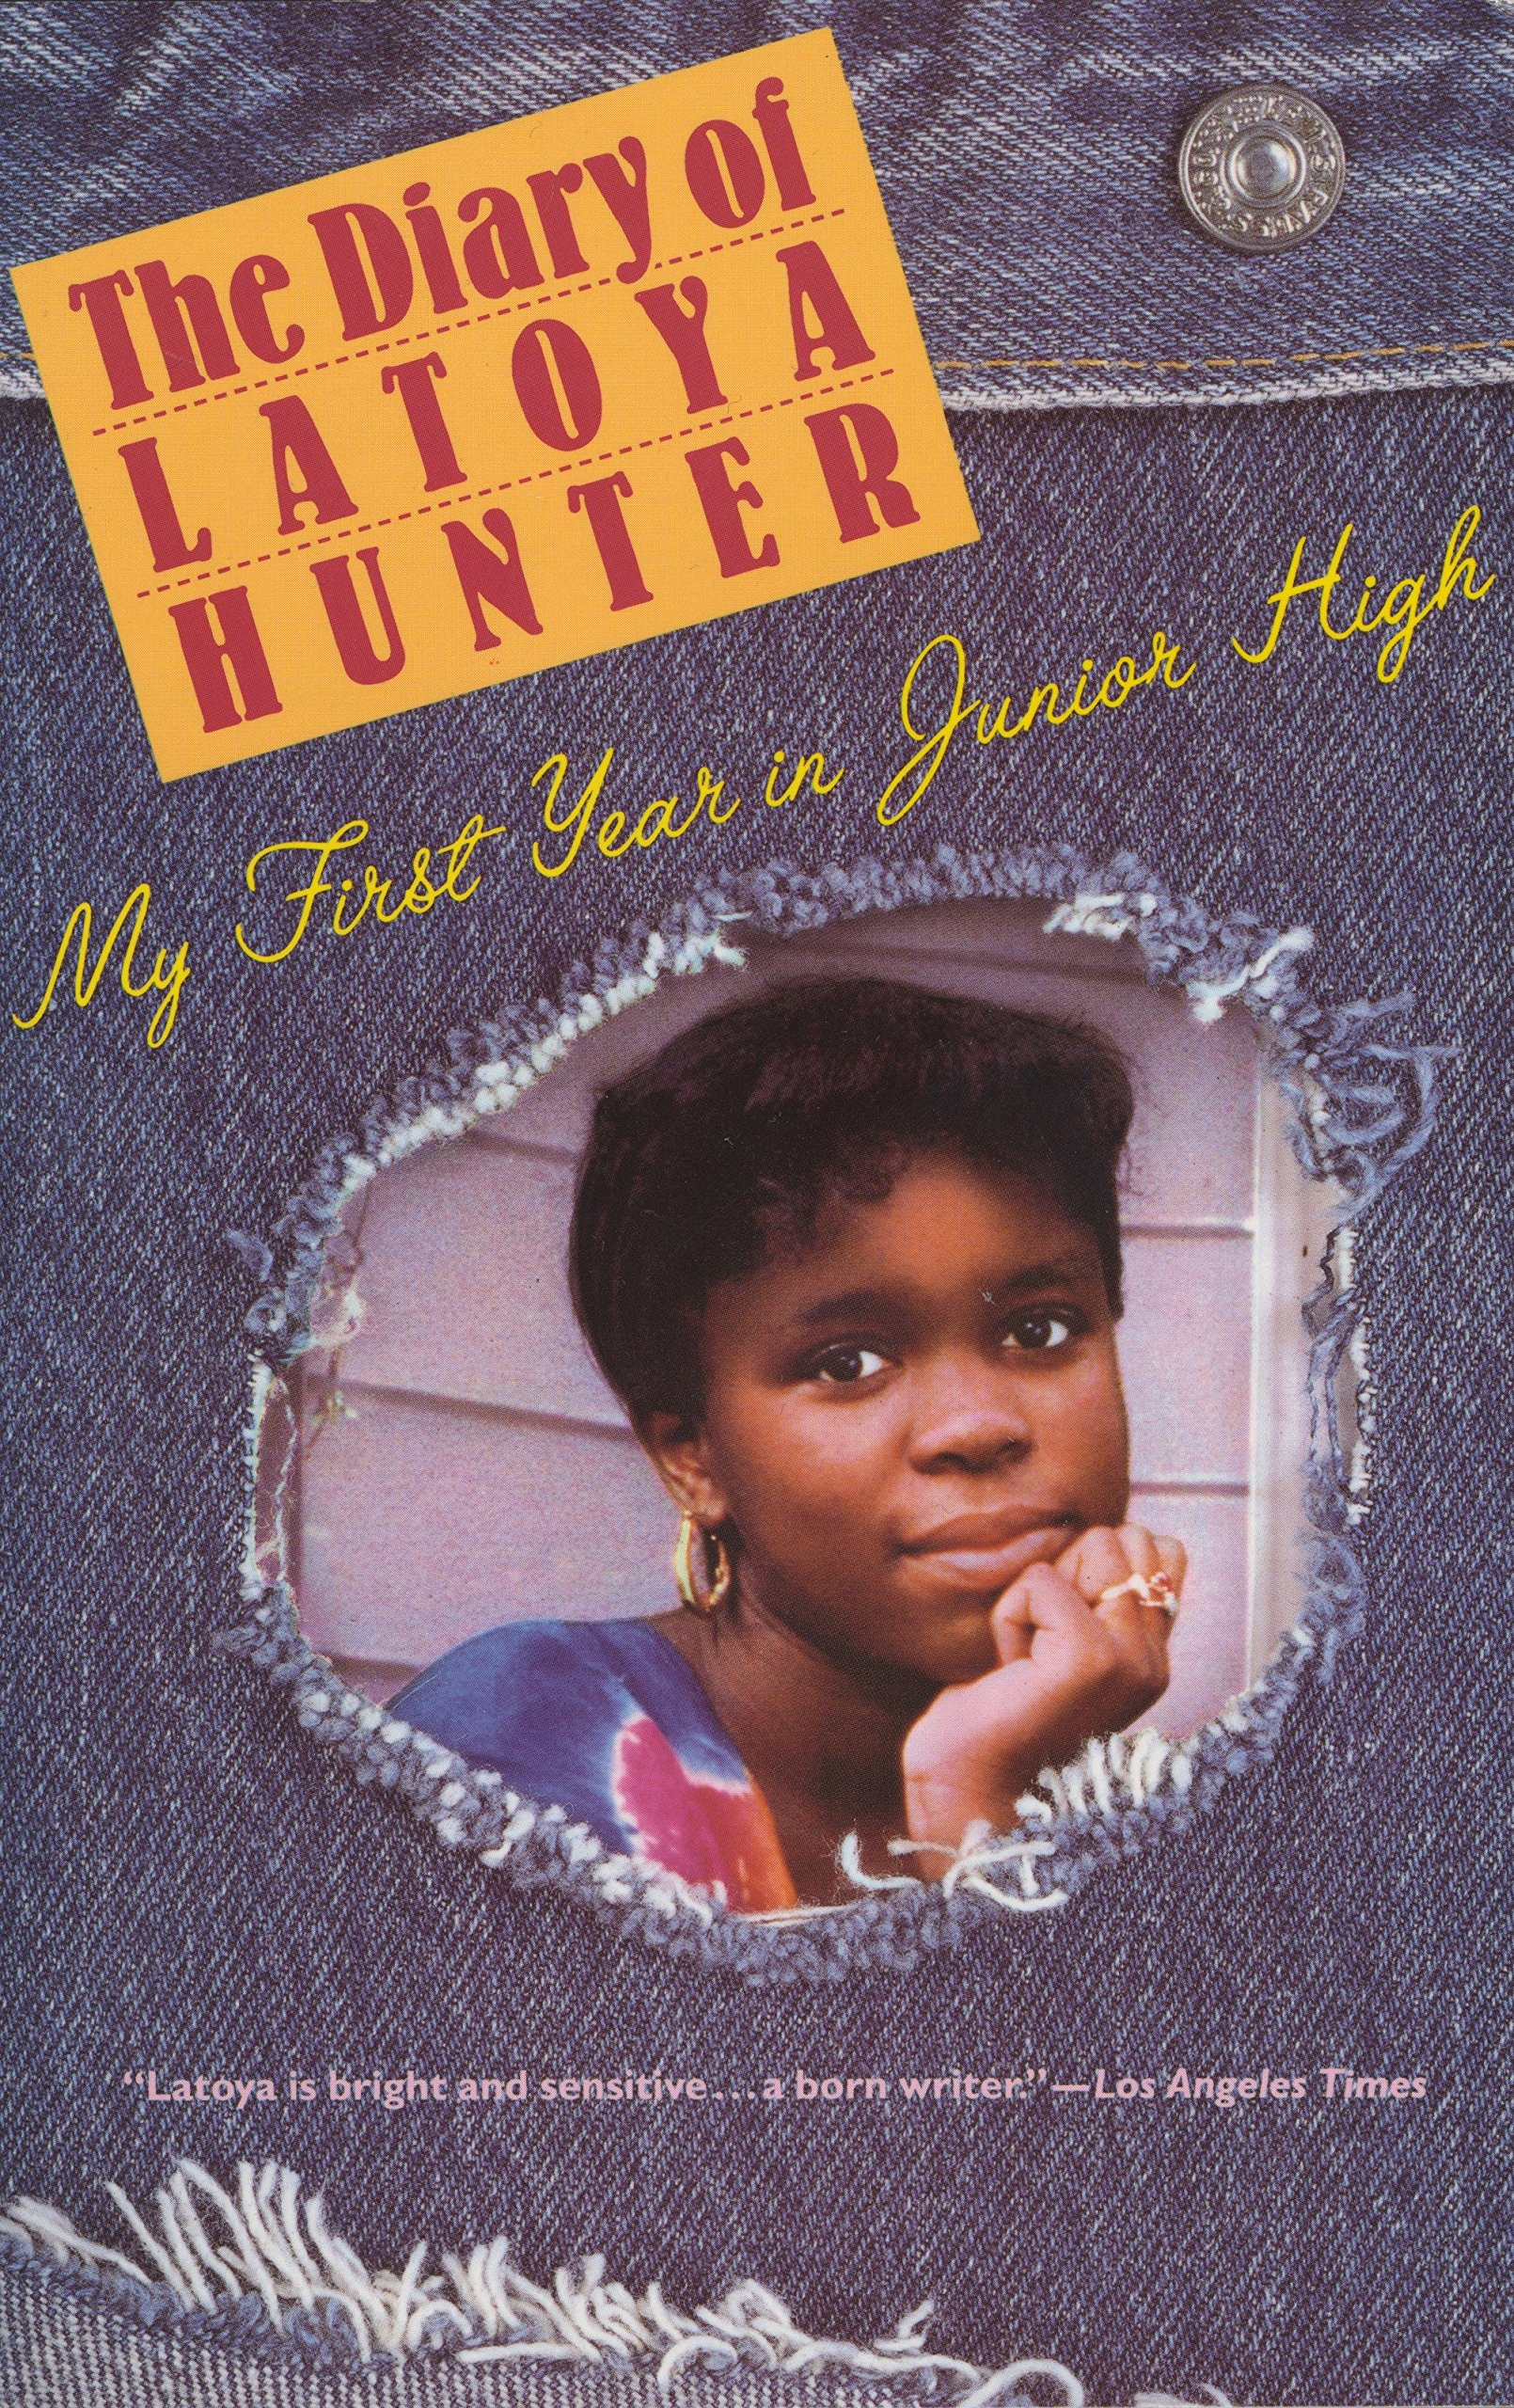 Read Online Diary of Latoya Hunter: My First Year in Junior High ebook